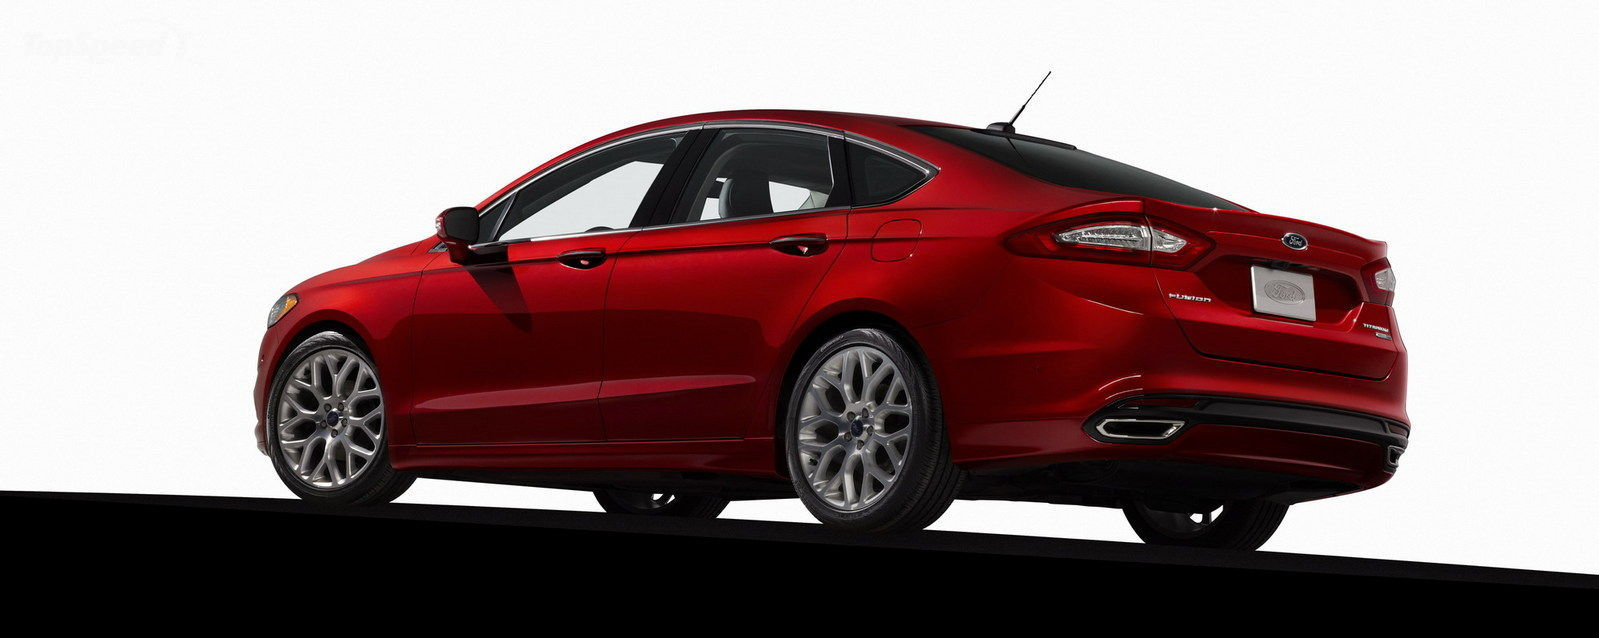 car in 2013 Ford Fusion